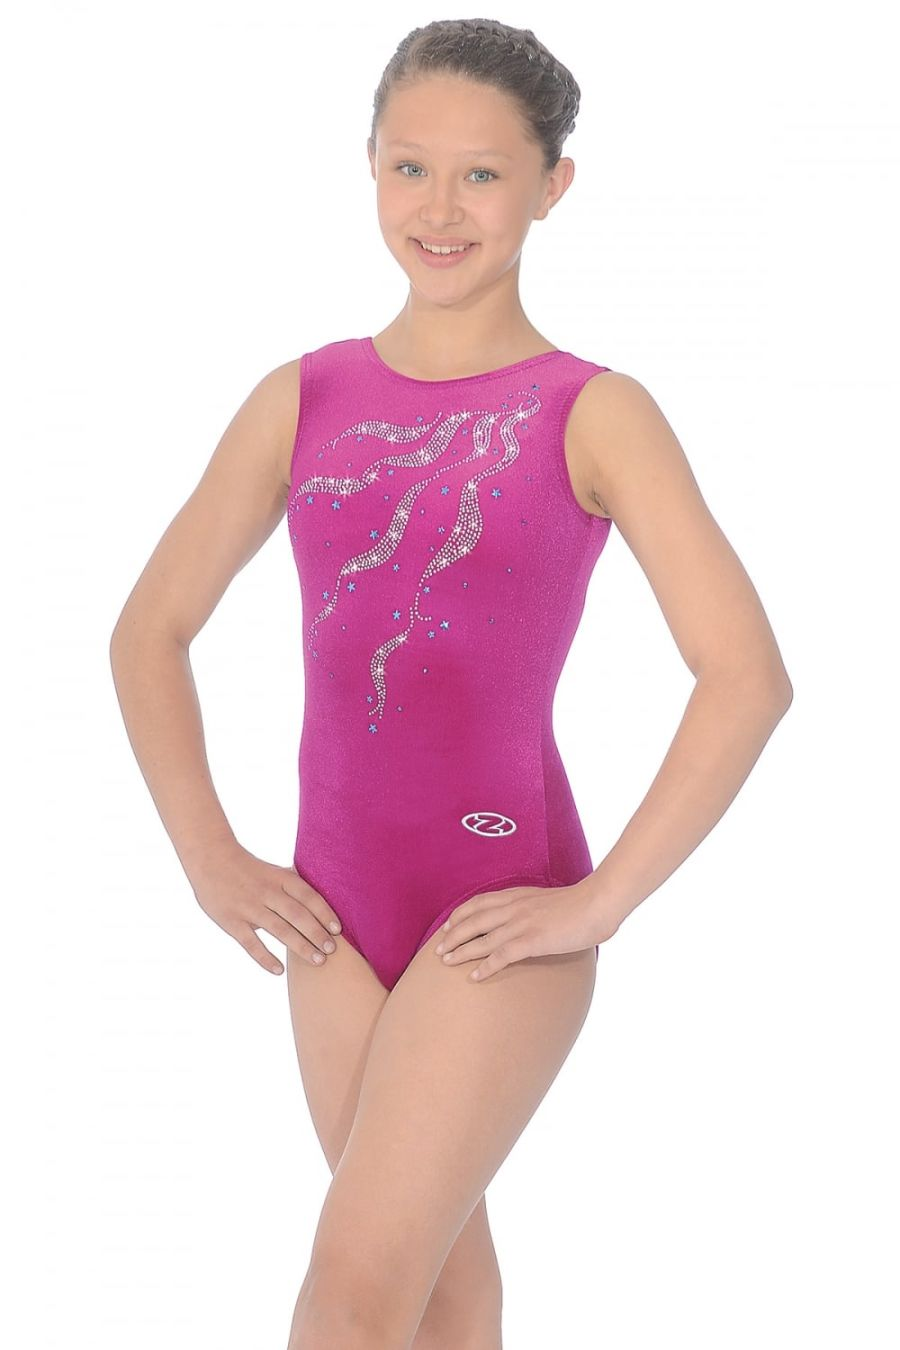 The Zone by Roch Valley Z103 Ribbons Gymnastic Leotard